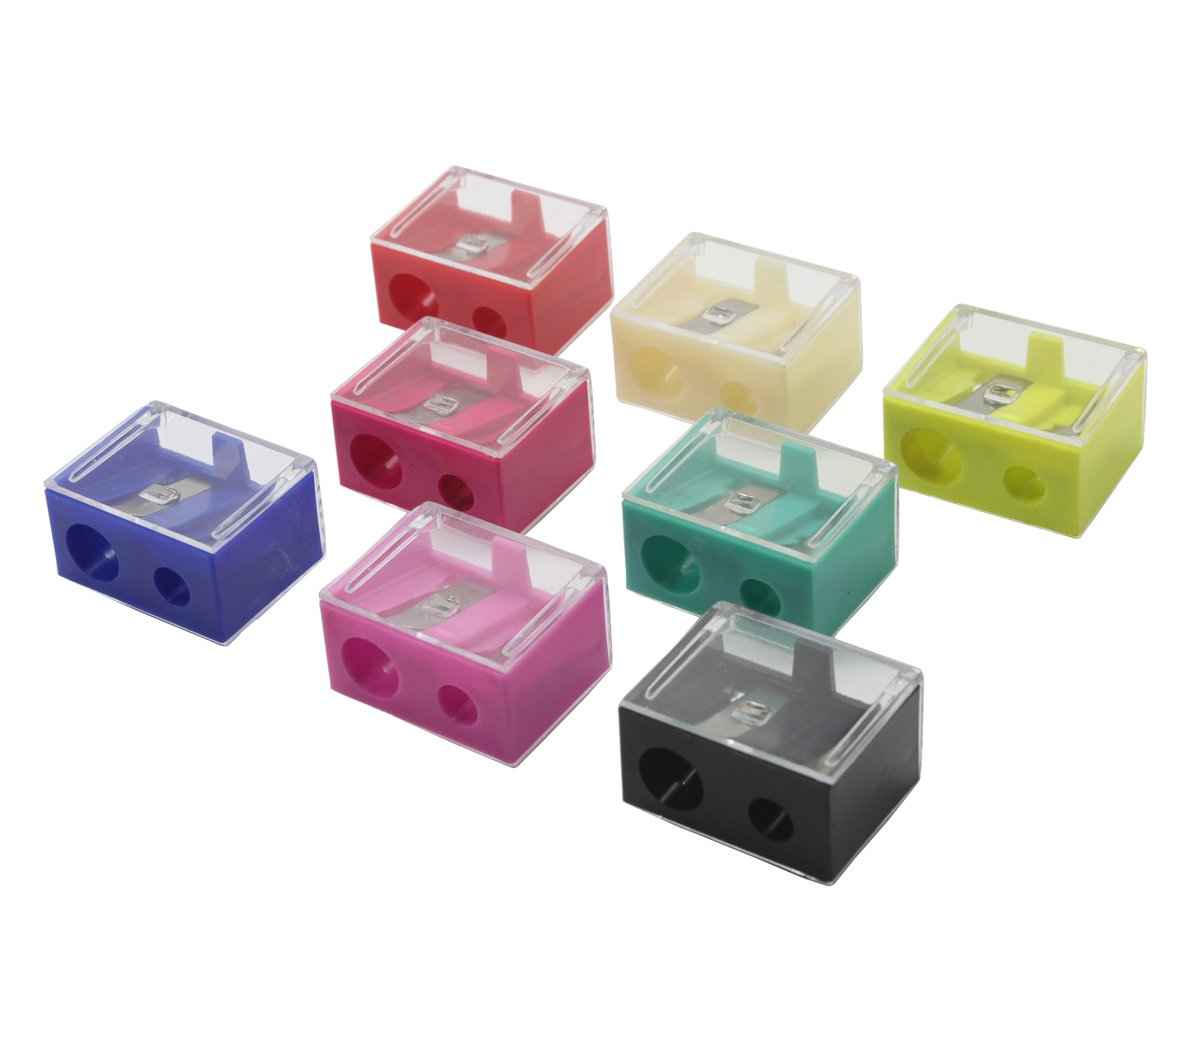 12Pcs Dual Holes Cosmetic Pencil Sharpeners With Clear Cover, Manual Box-Shaped Eyebrow Pencil Cutter Daptsy